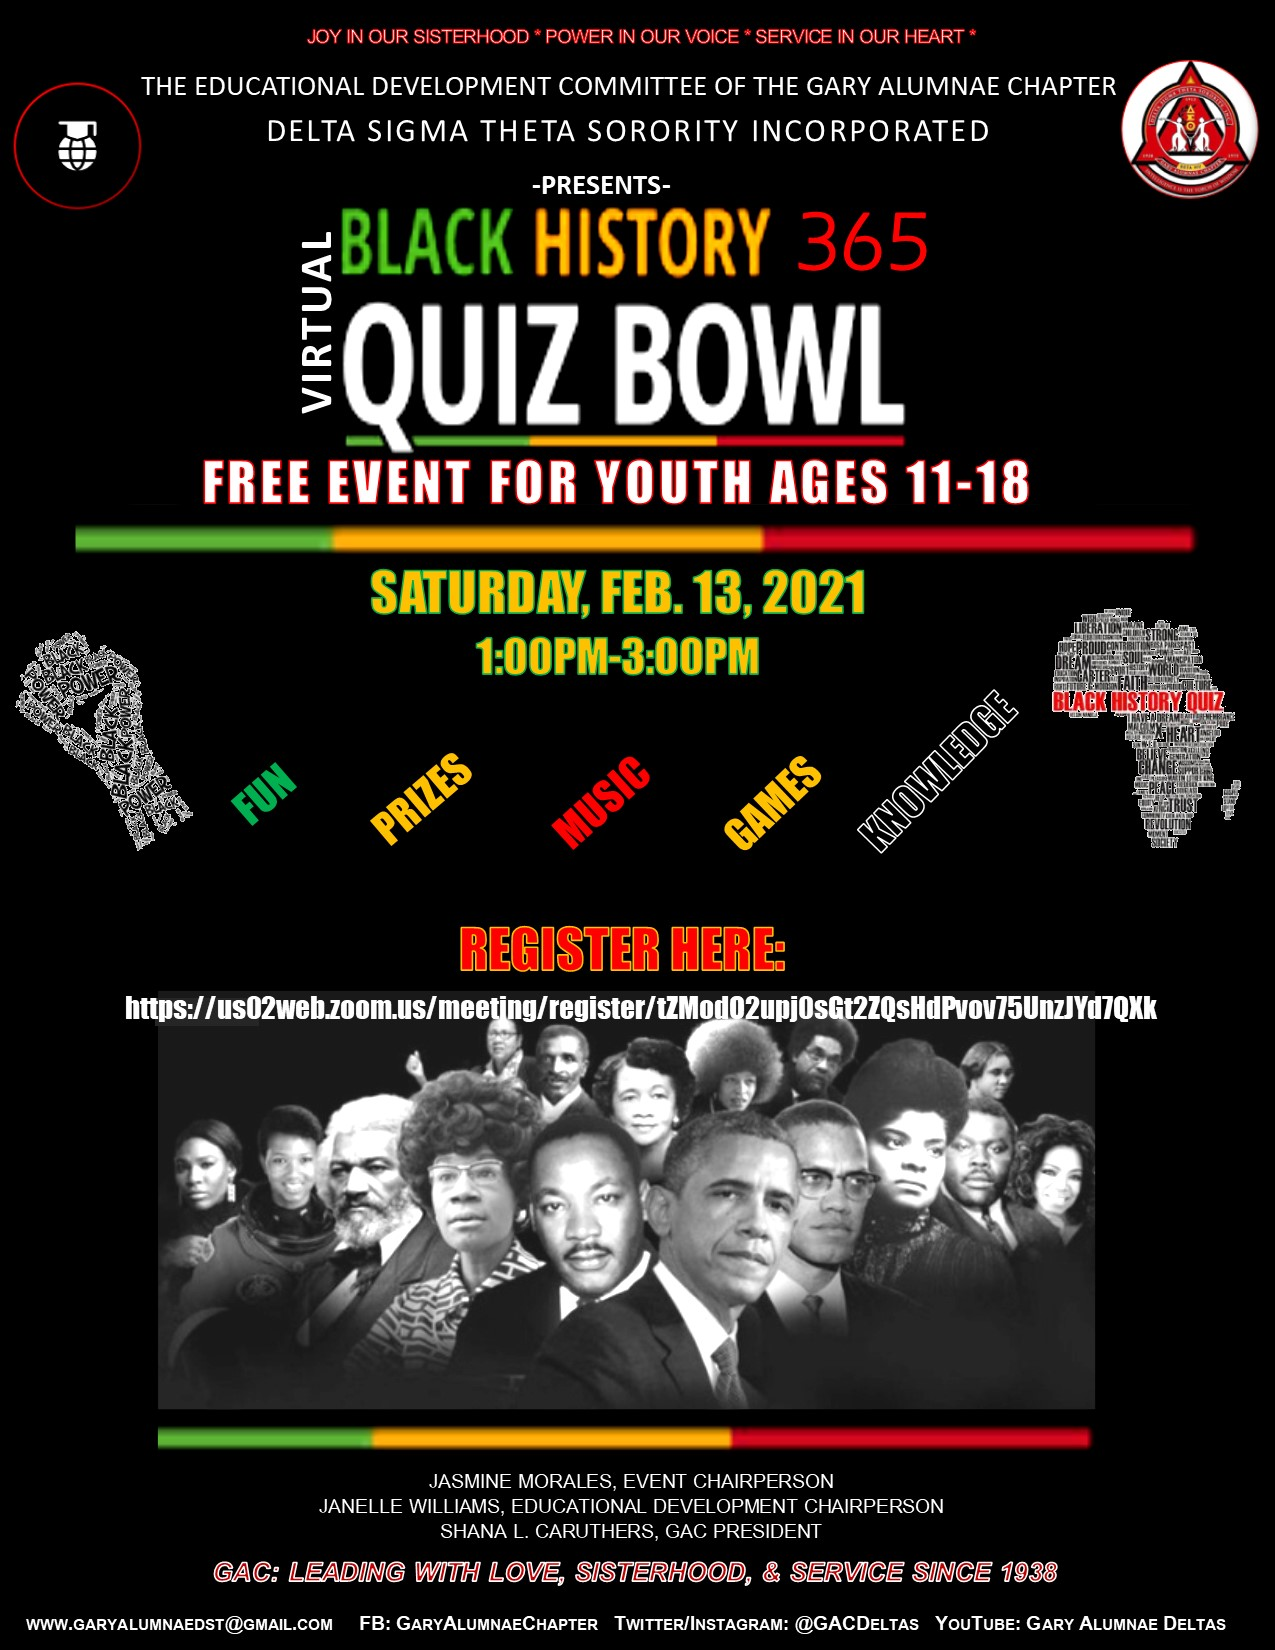 BLACK HISTORY 365 BOWL (Please click on the flyer to register)